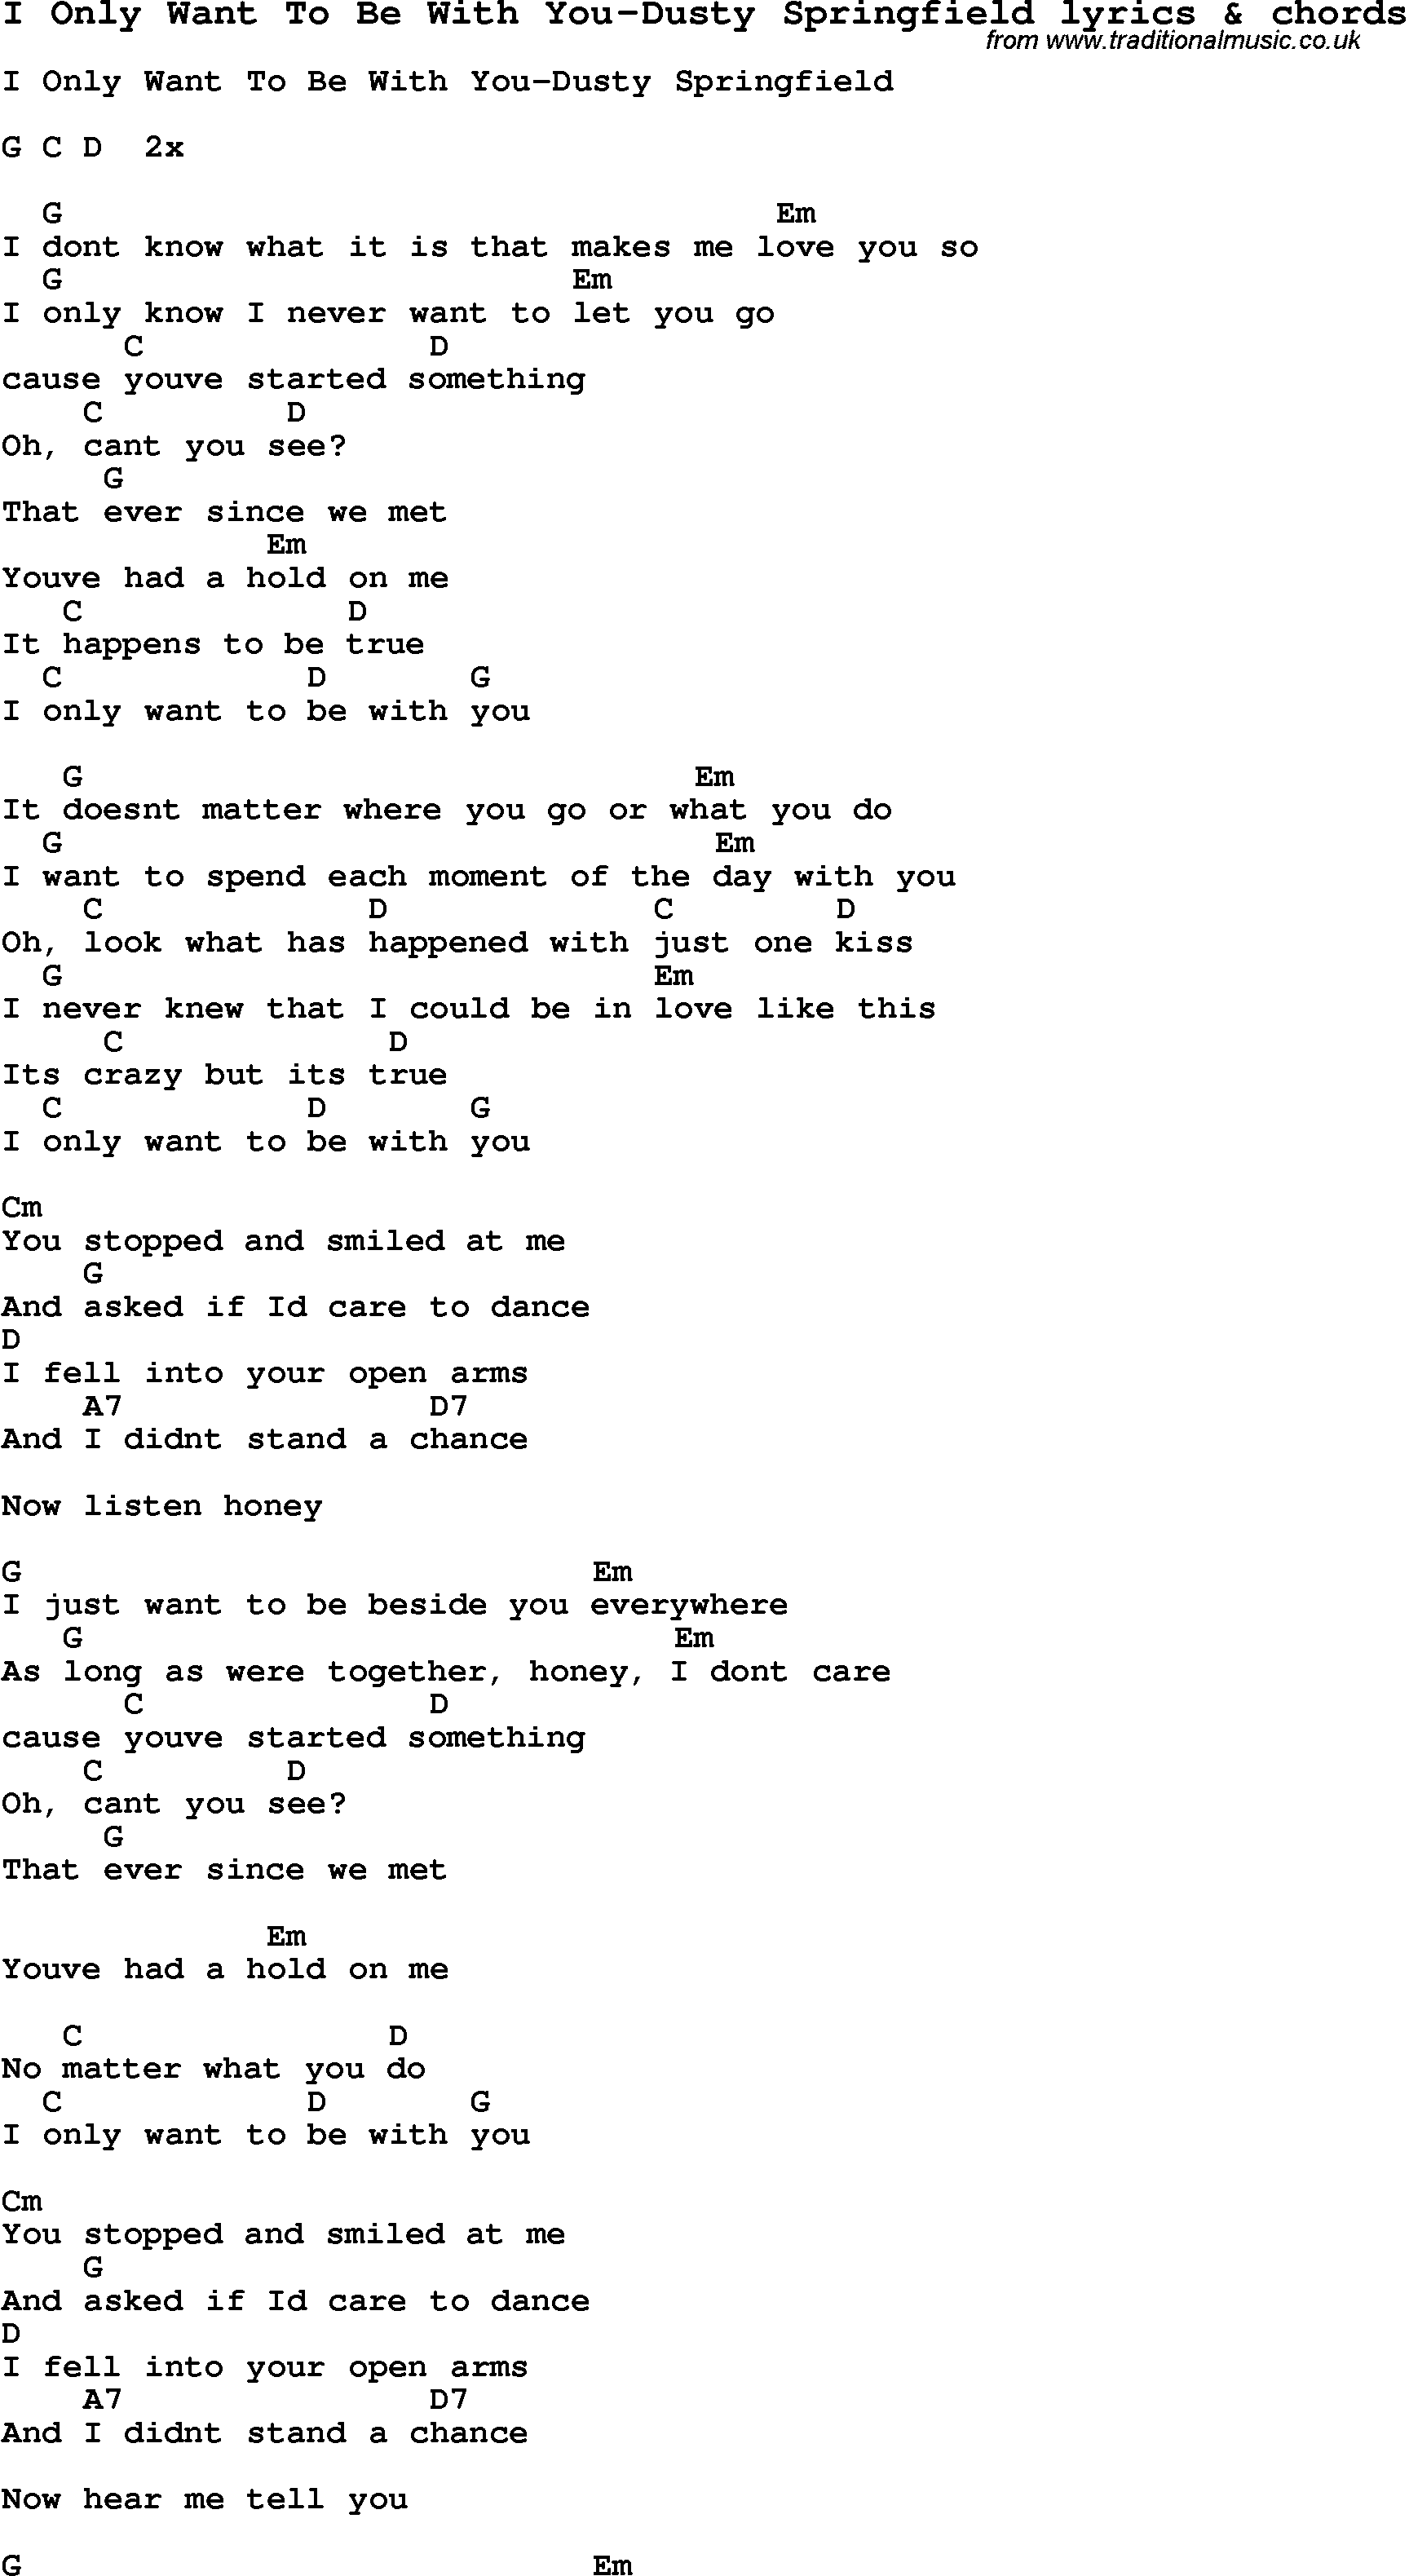 i only want to be with you lyrics